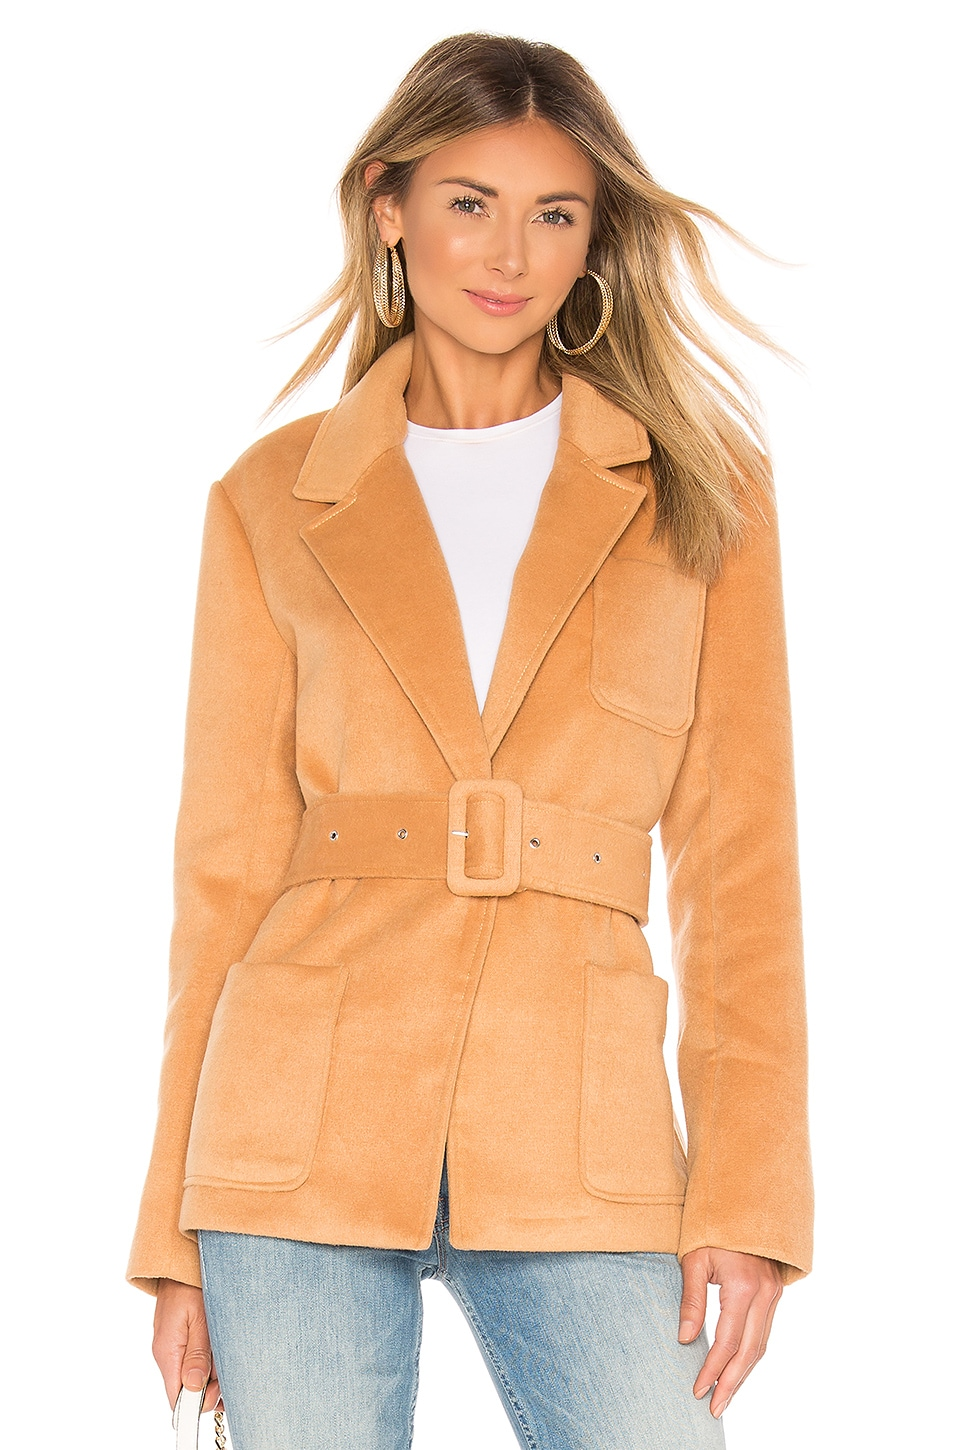 L'Academie The Susan Jacket in Camel